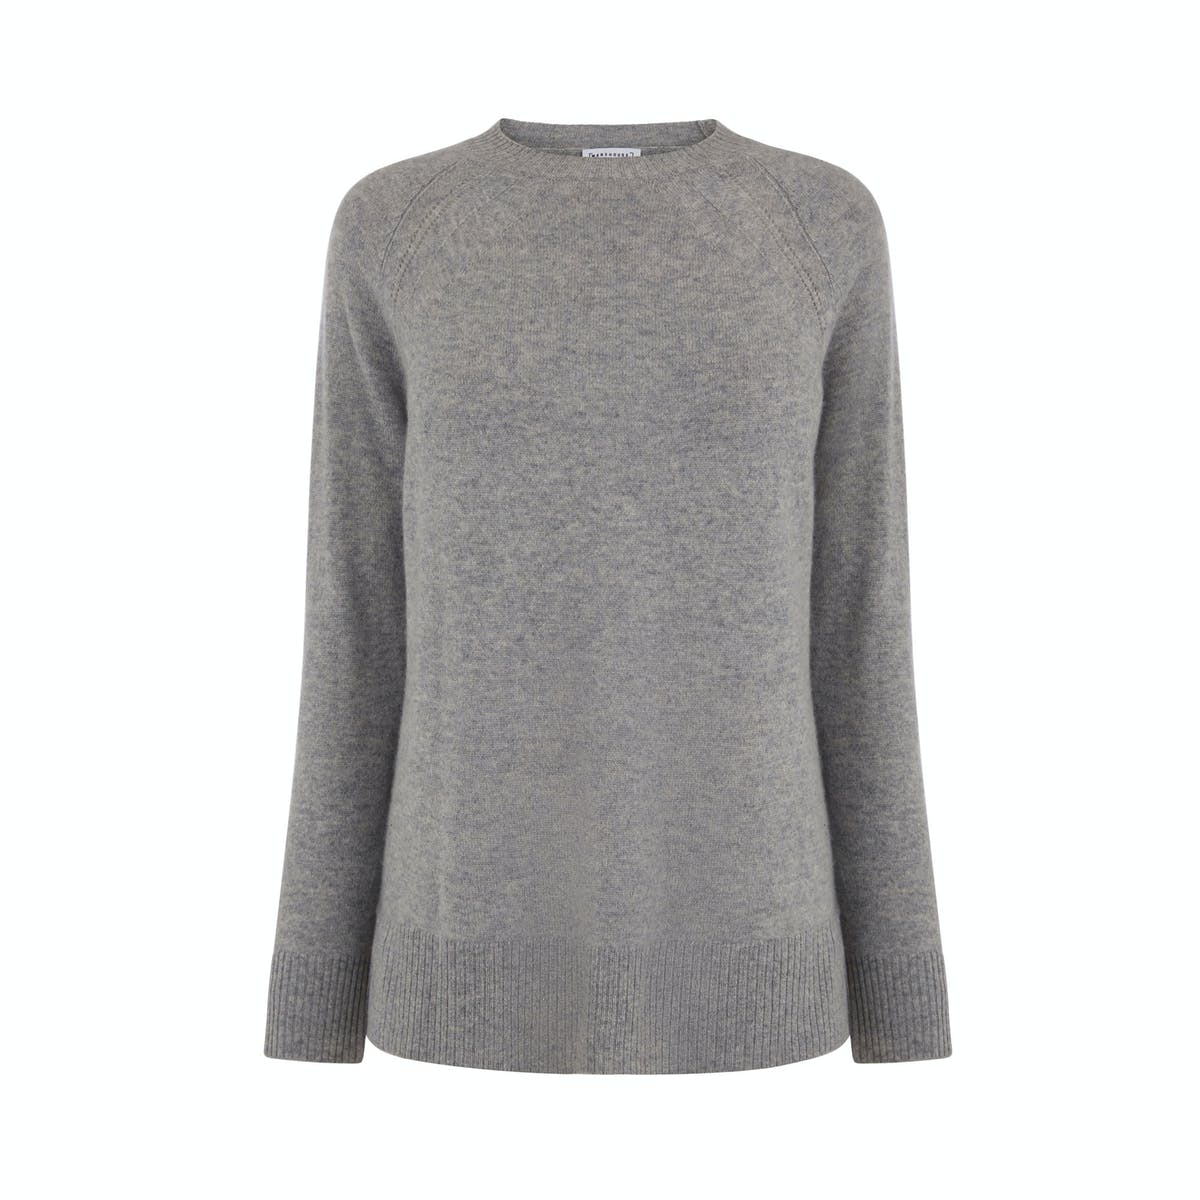 0e38ee1d2bd Opting for a classic is never a bad idea. You'll wear a grey, cashmere crew  neck knit so many times that you'll lose count. Note: even better if it's  half ...